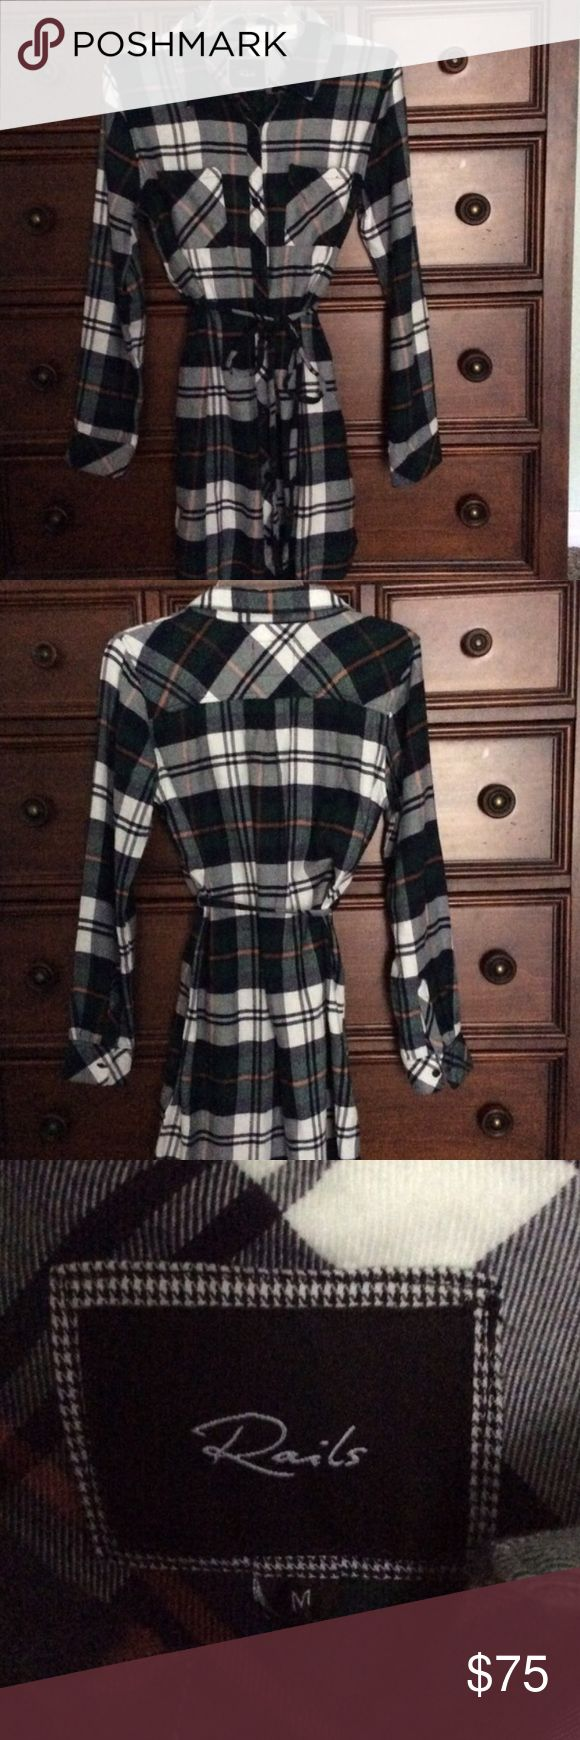 """Rails Plaid Flannel Shirt Dress Shirtdress Medium This is a Rails flannel shirt dress perfect condition, Colors are green navy orange and white. Made by Rails, this is not cheap flannel that will shrink and fade ❣️❣️ very soft nice flannel, buttons all the way down has two front pockets and a tie belt. Measurements are, shoulder to shoulder is 17"""" arm pit to arm p is 16"""" length is 35 1/2 """" long 😊 comes from a smoke free home Rails Dresses Midi"""